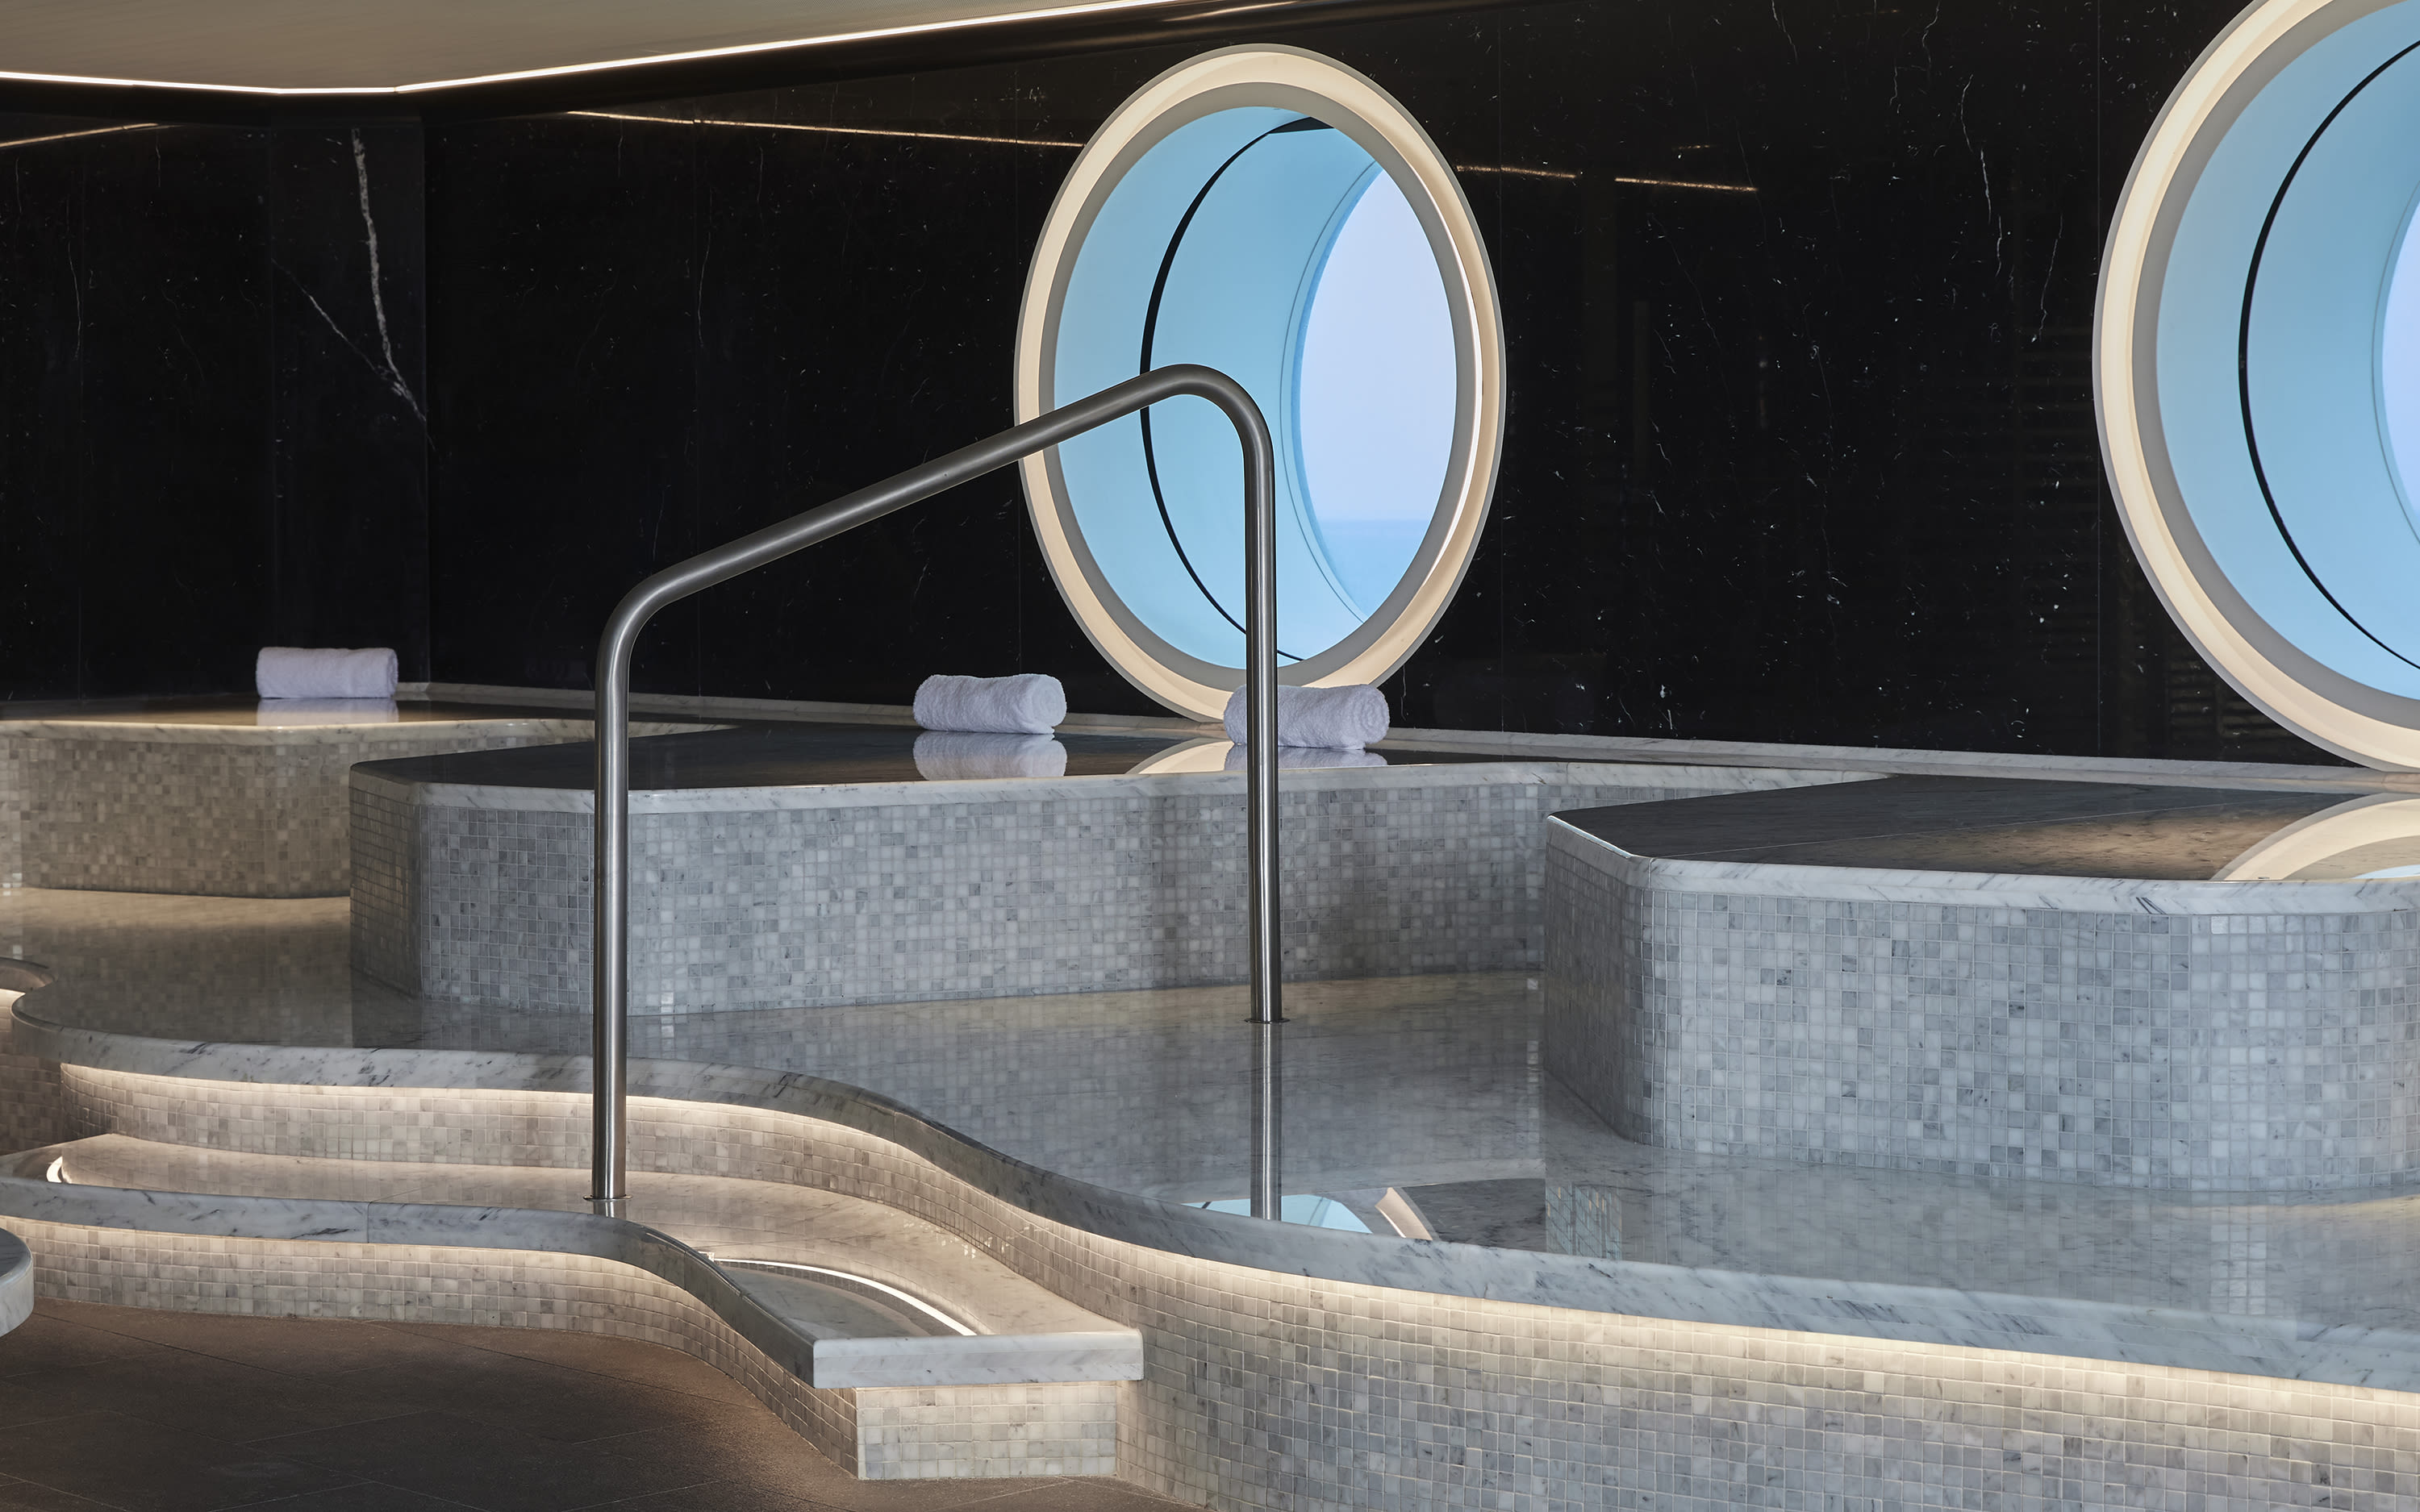 Spa on board Virgin Voyages' ship Scarlet Lady